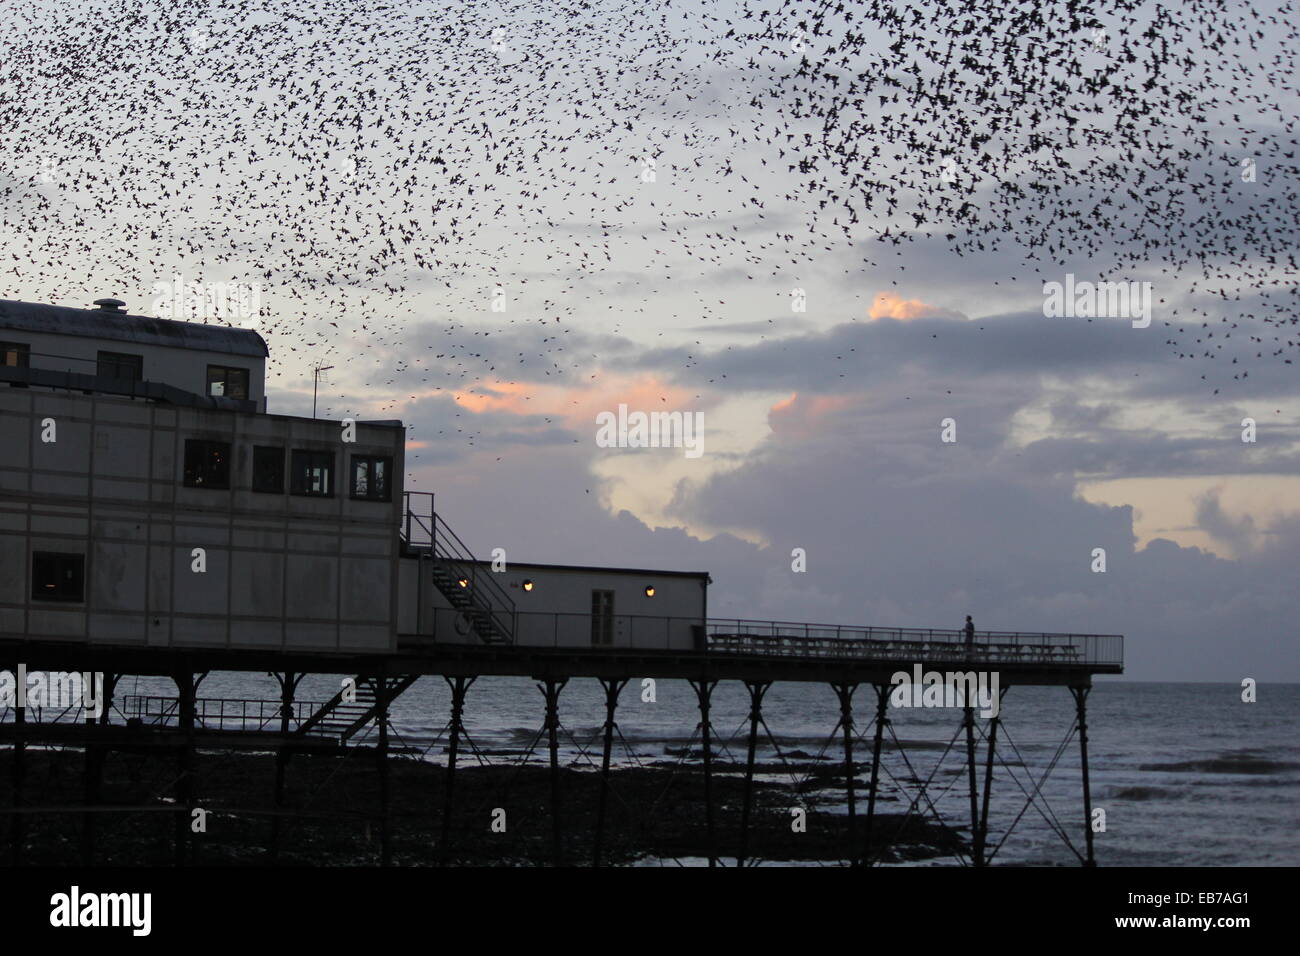 Aberystwyth Wales. A murmuration of starlings return to roost on the pier at sundown. Stock Photo